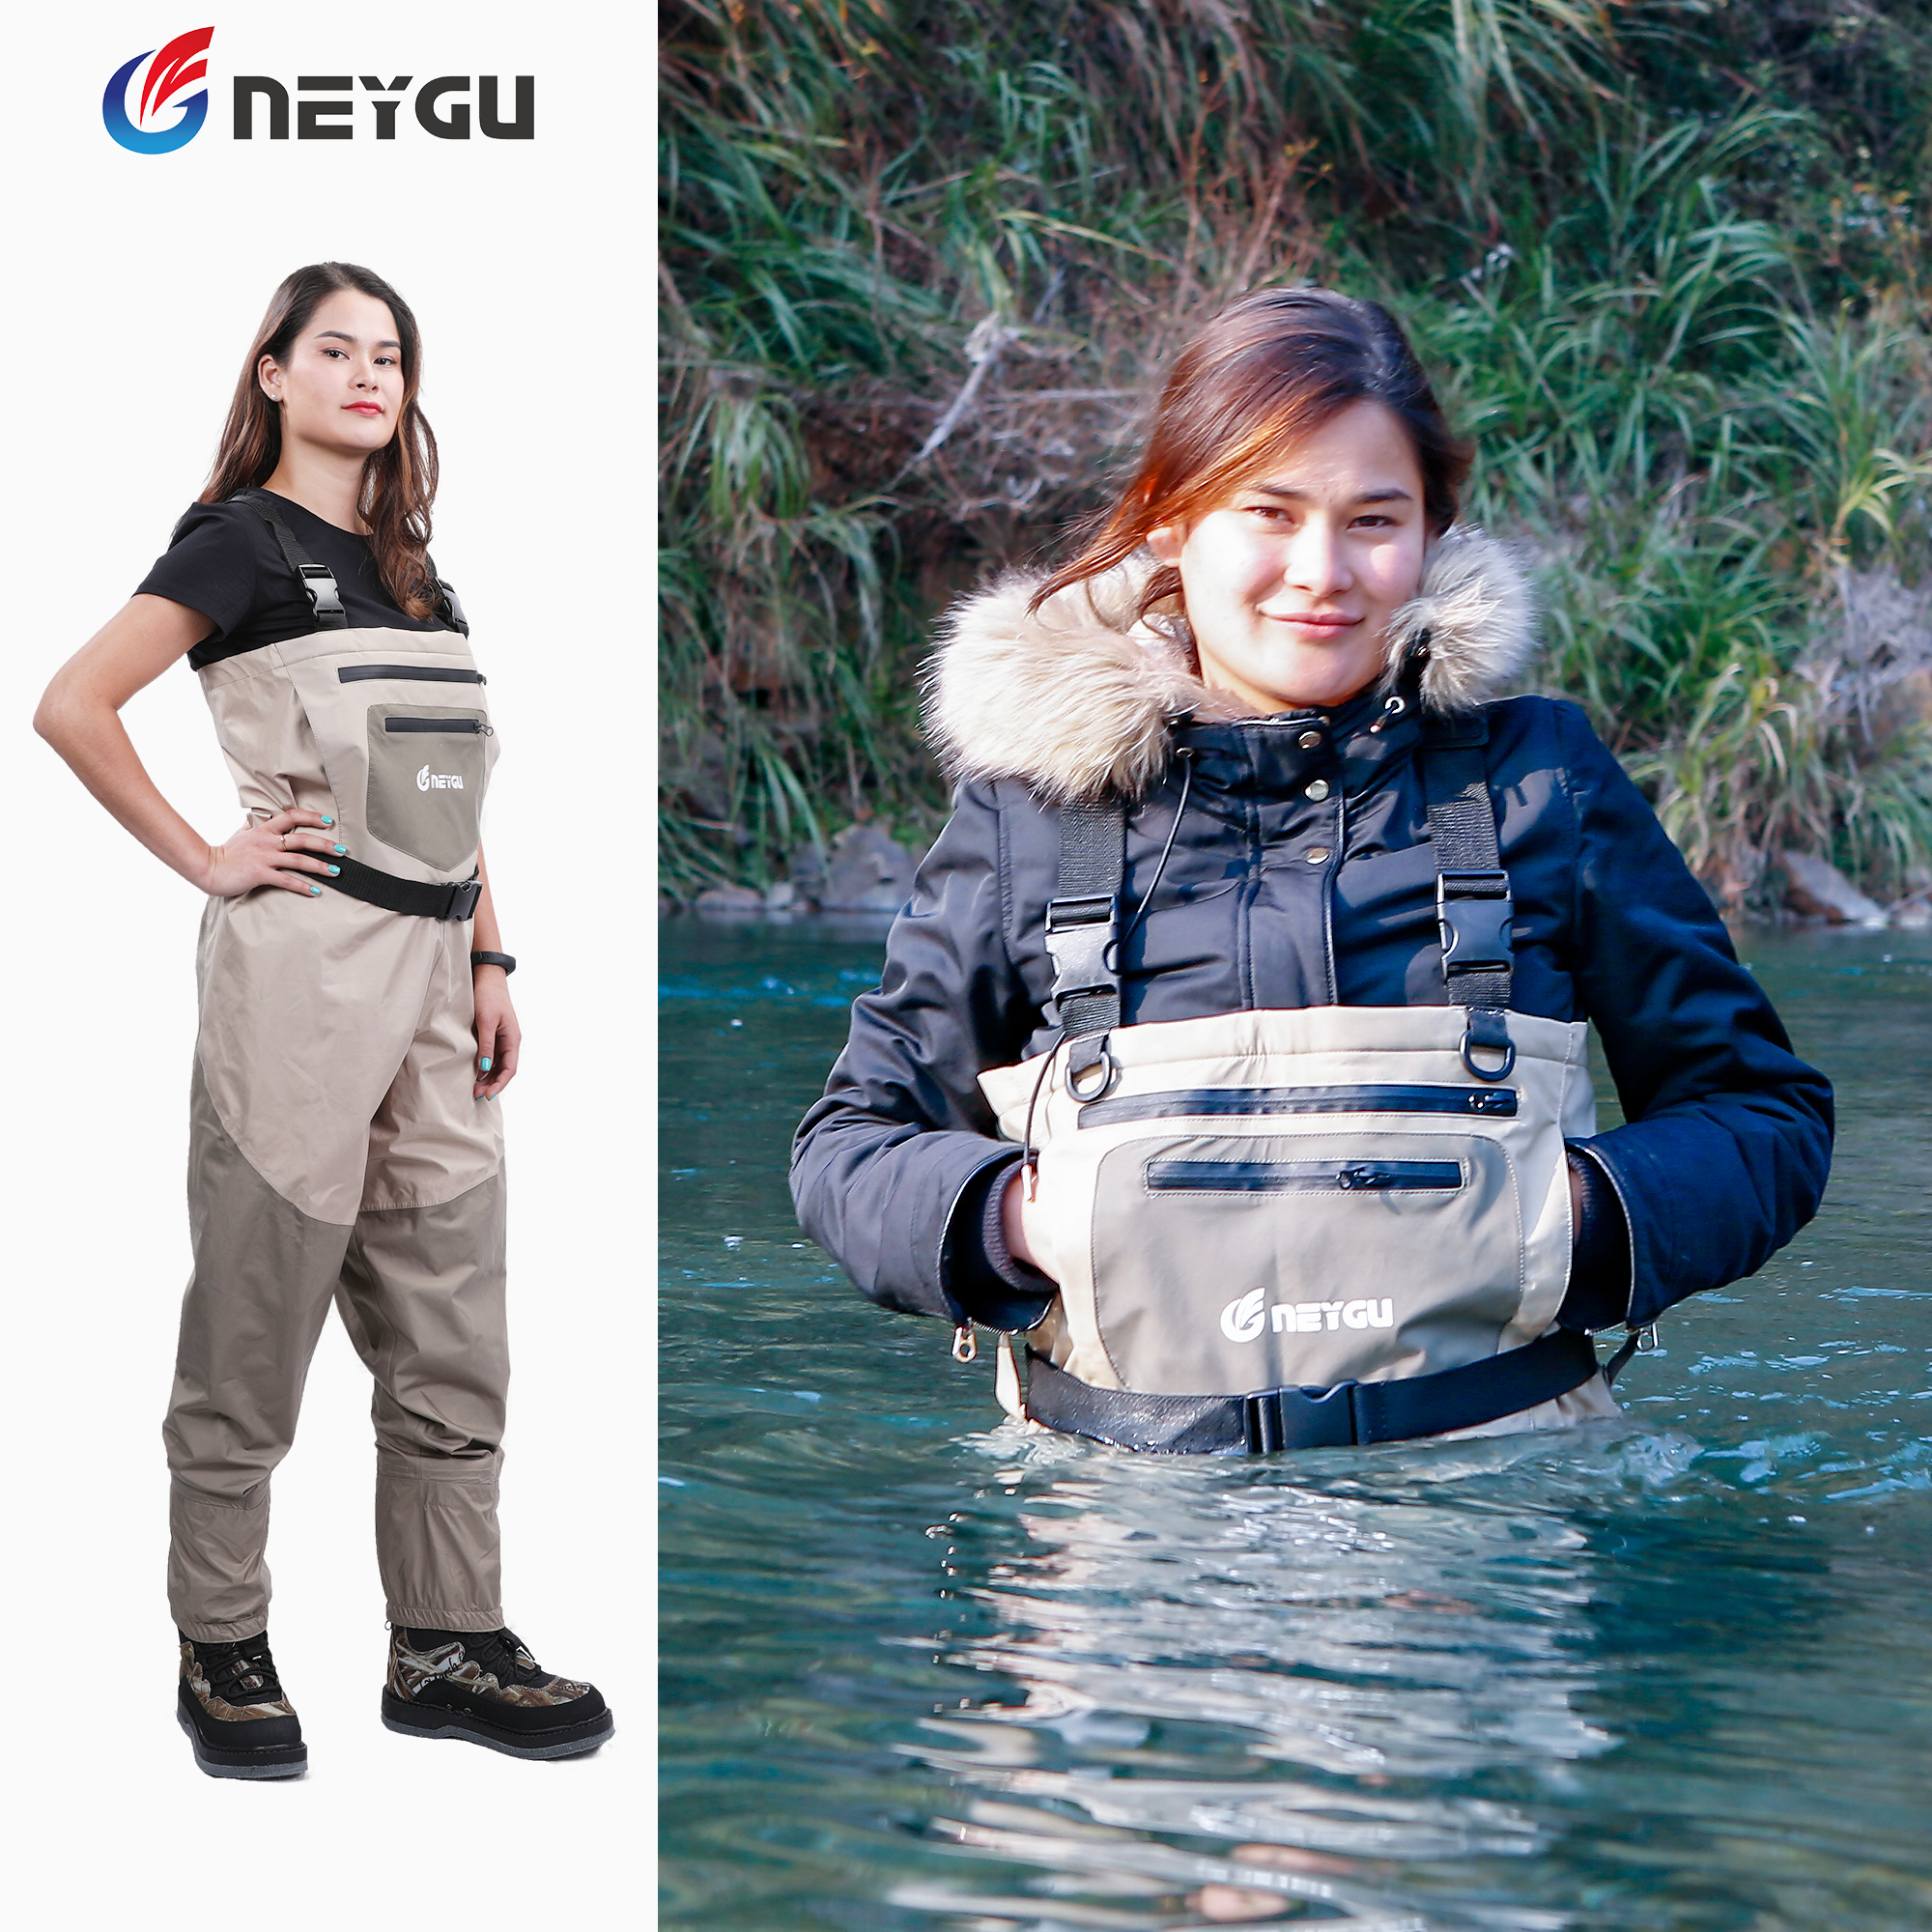 NEYGU Outdoor Waterproof&windproof&breathable Fly Fishing Chest Wader,for Hunting,rafting,swamp Or Muddy  Hiking